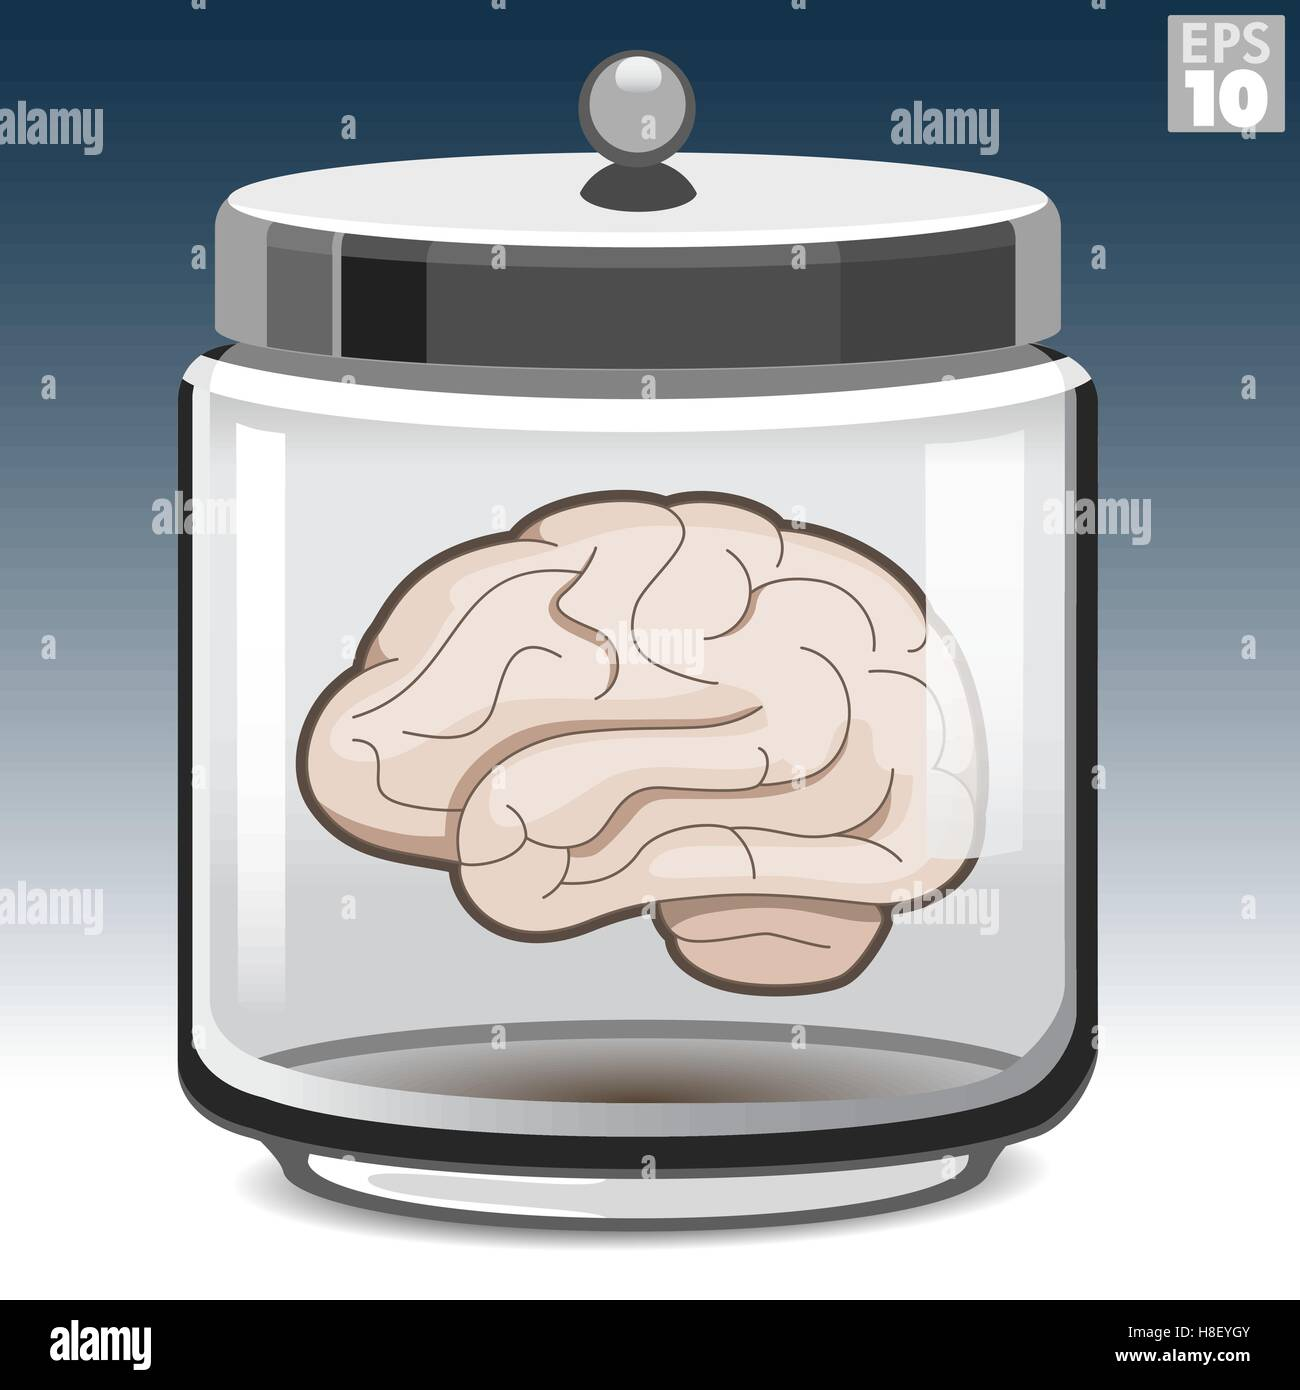 Human brain in a glass jar - Stock Vector